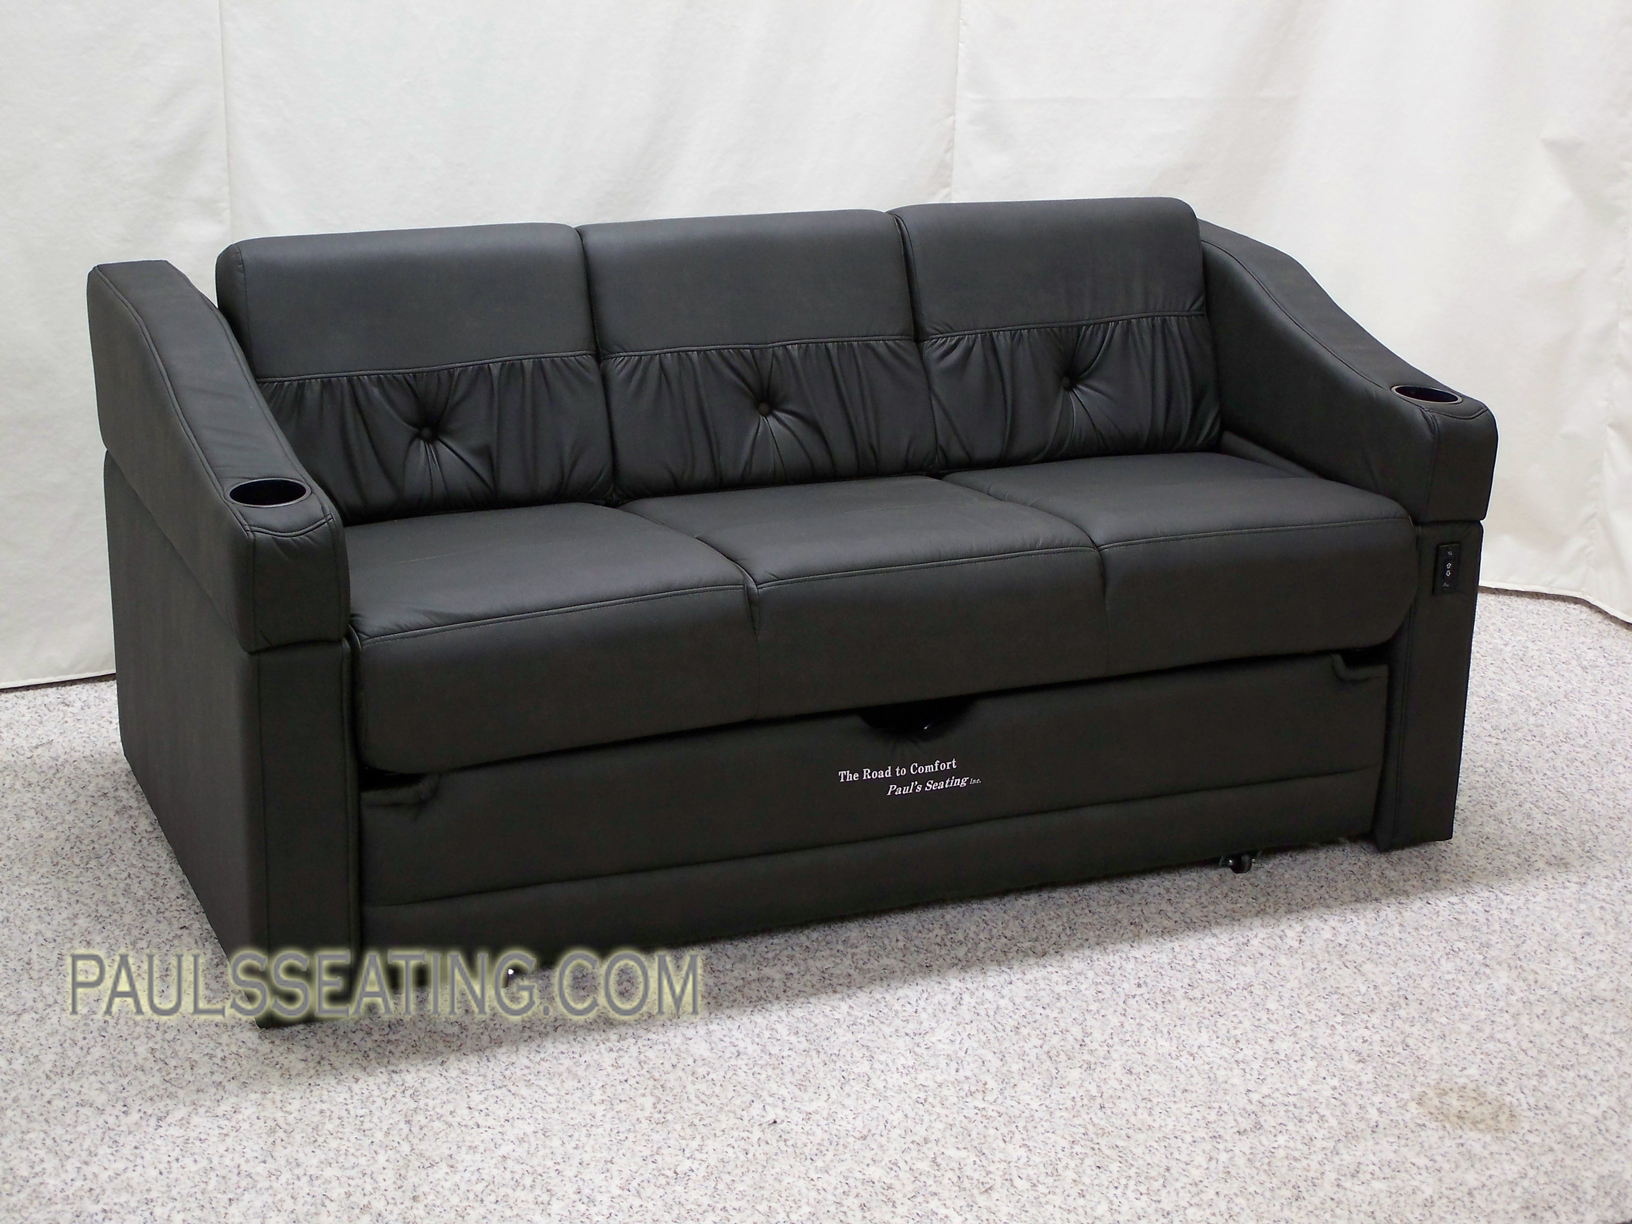 Elite Power sofa w- ottoman.JPG